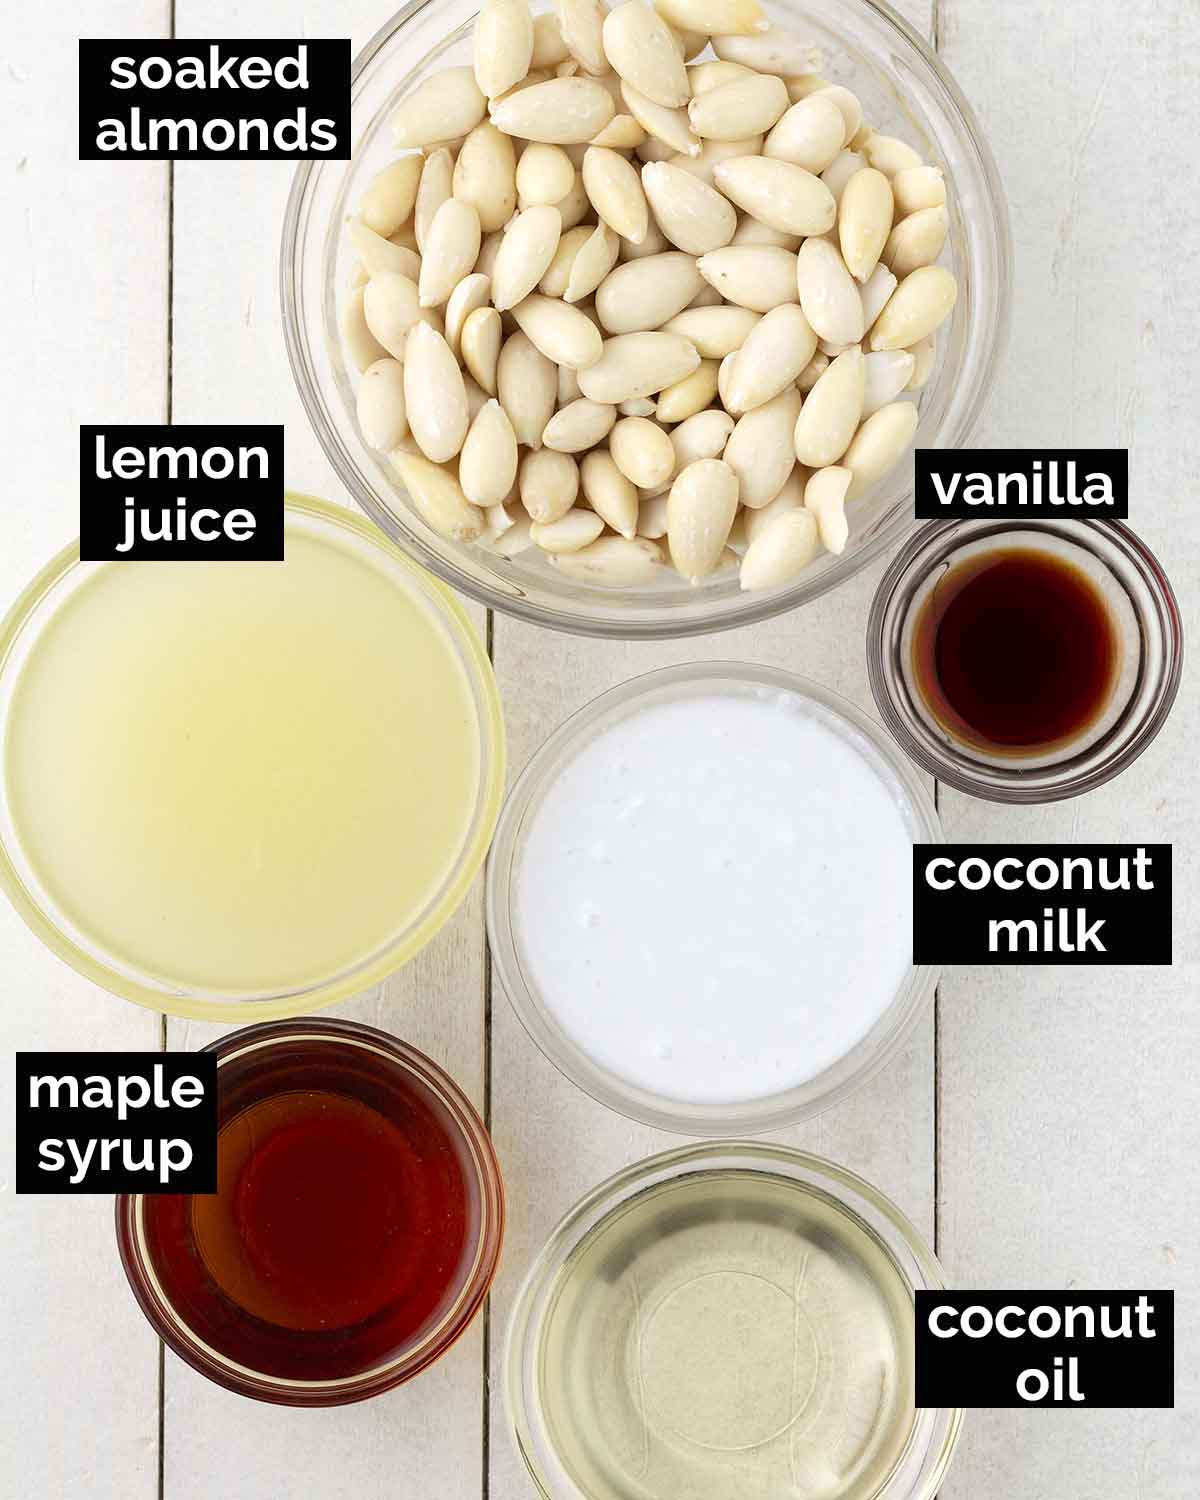 An overhead shot showing the ingredients needed to make the filling for this cheesecake recipe.